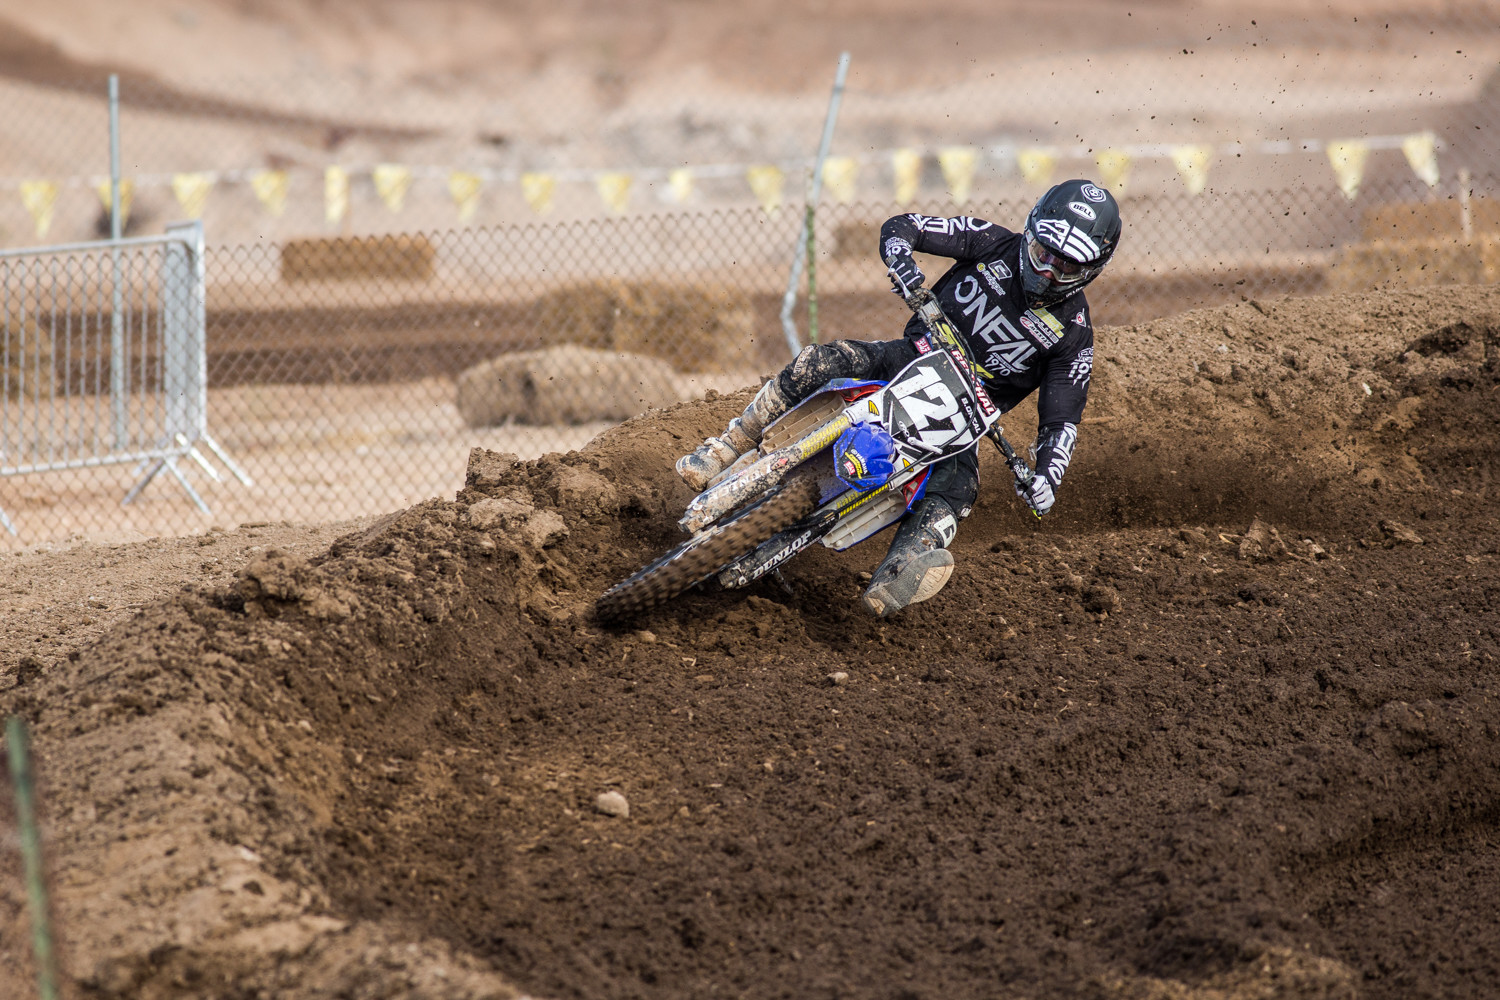 Braden O'Neal  - Gallery: 2017 AMA Arizona Open Amateur National - Friday - Motocross Pictures - Vital MX